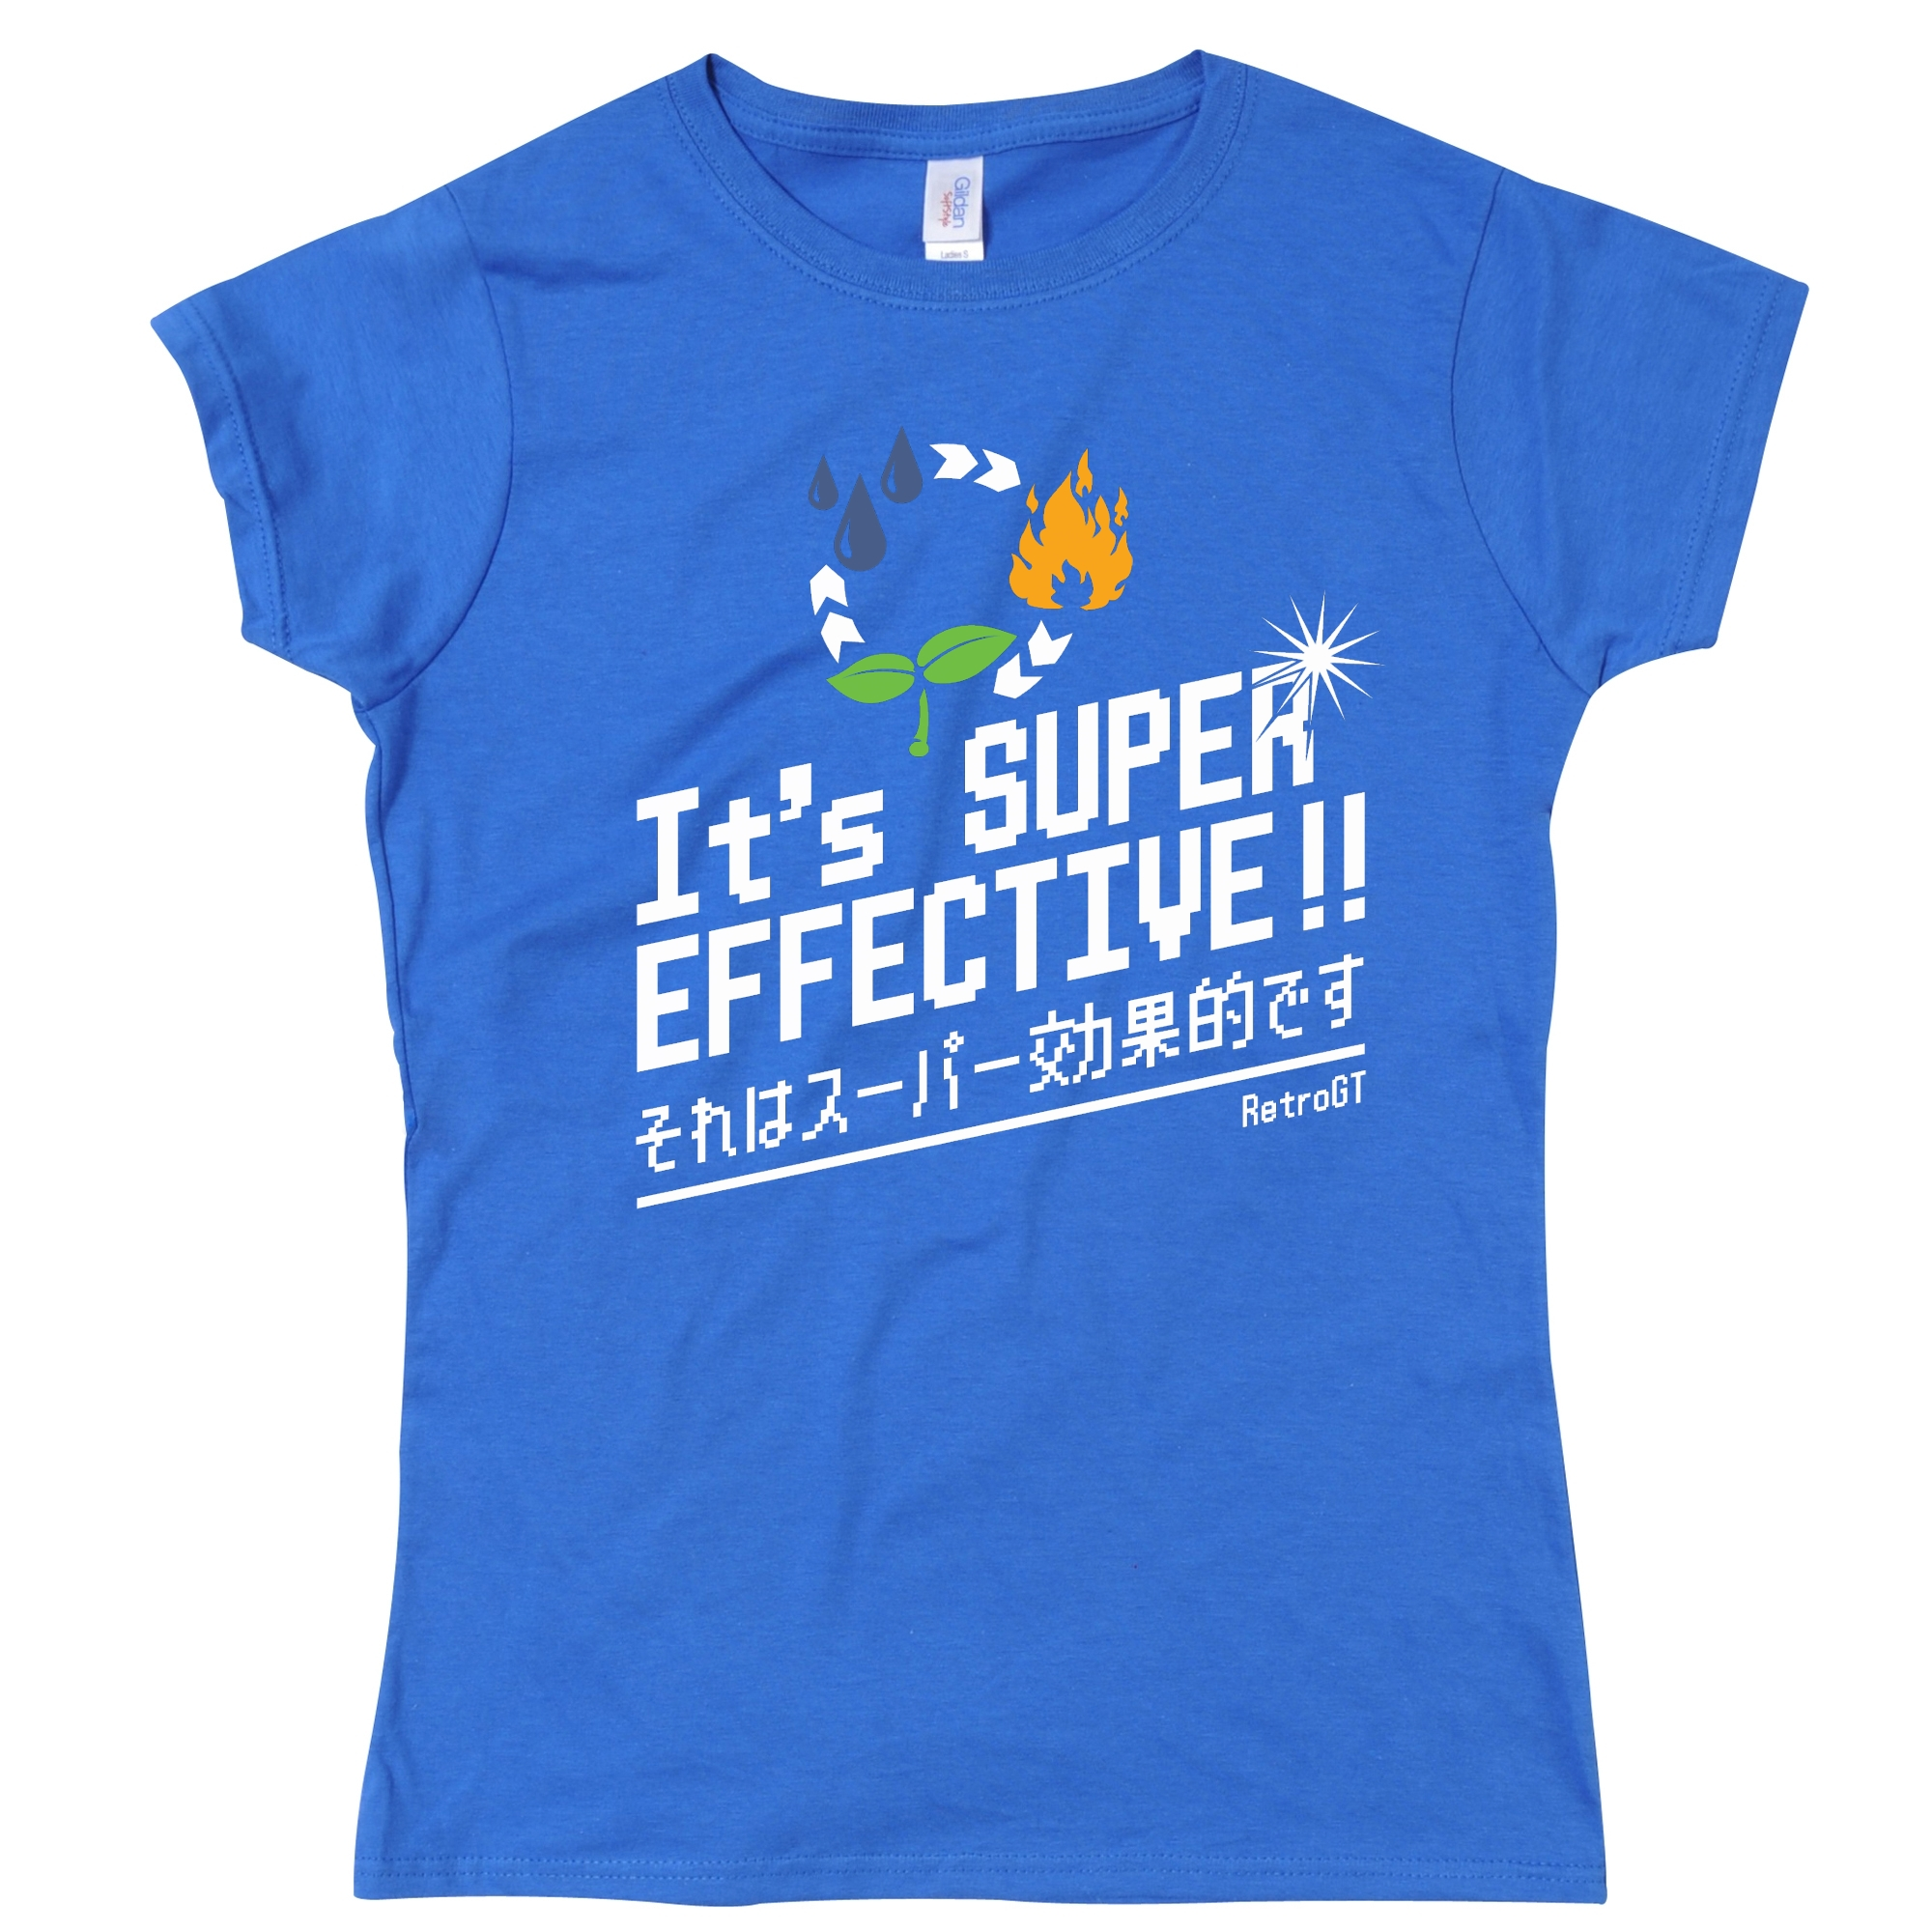 Alternative photo: It's Super Effective! Girls T-Shirt